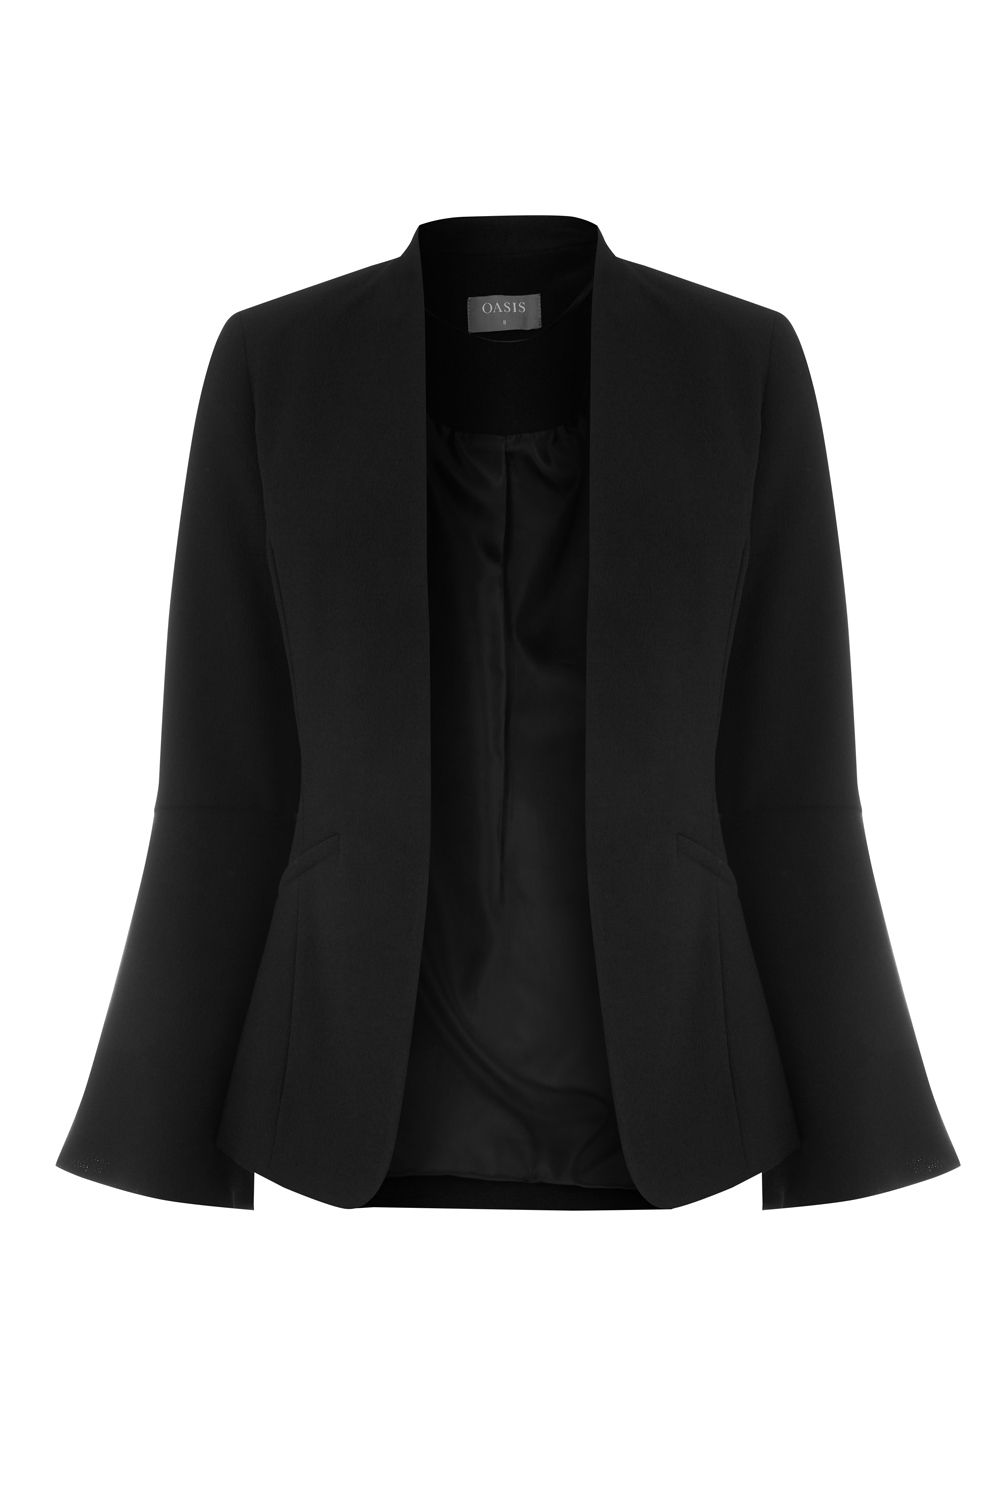 Oasis Bell Sleeve Jacket, Black